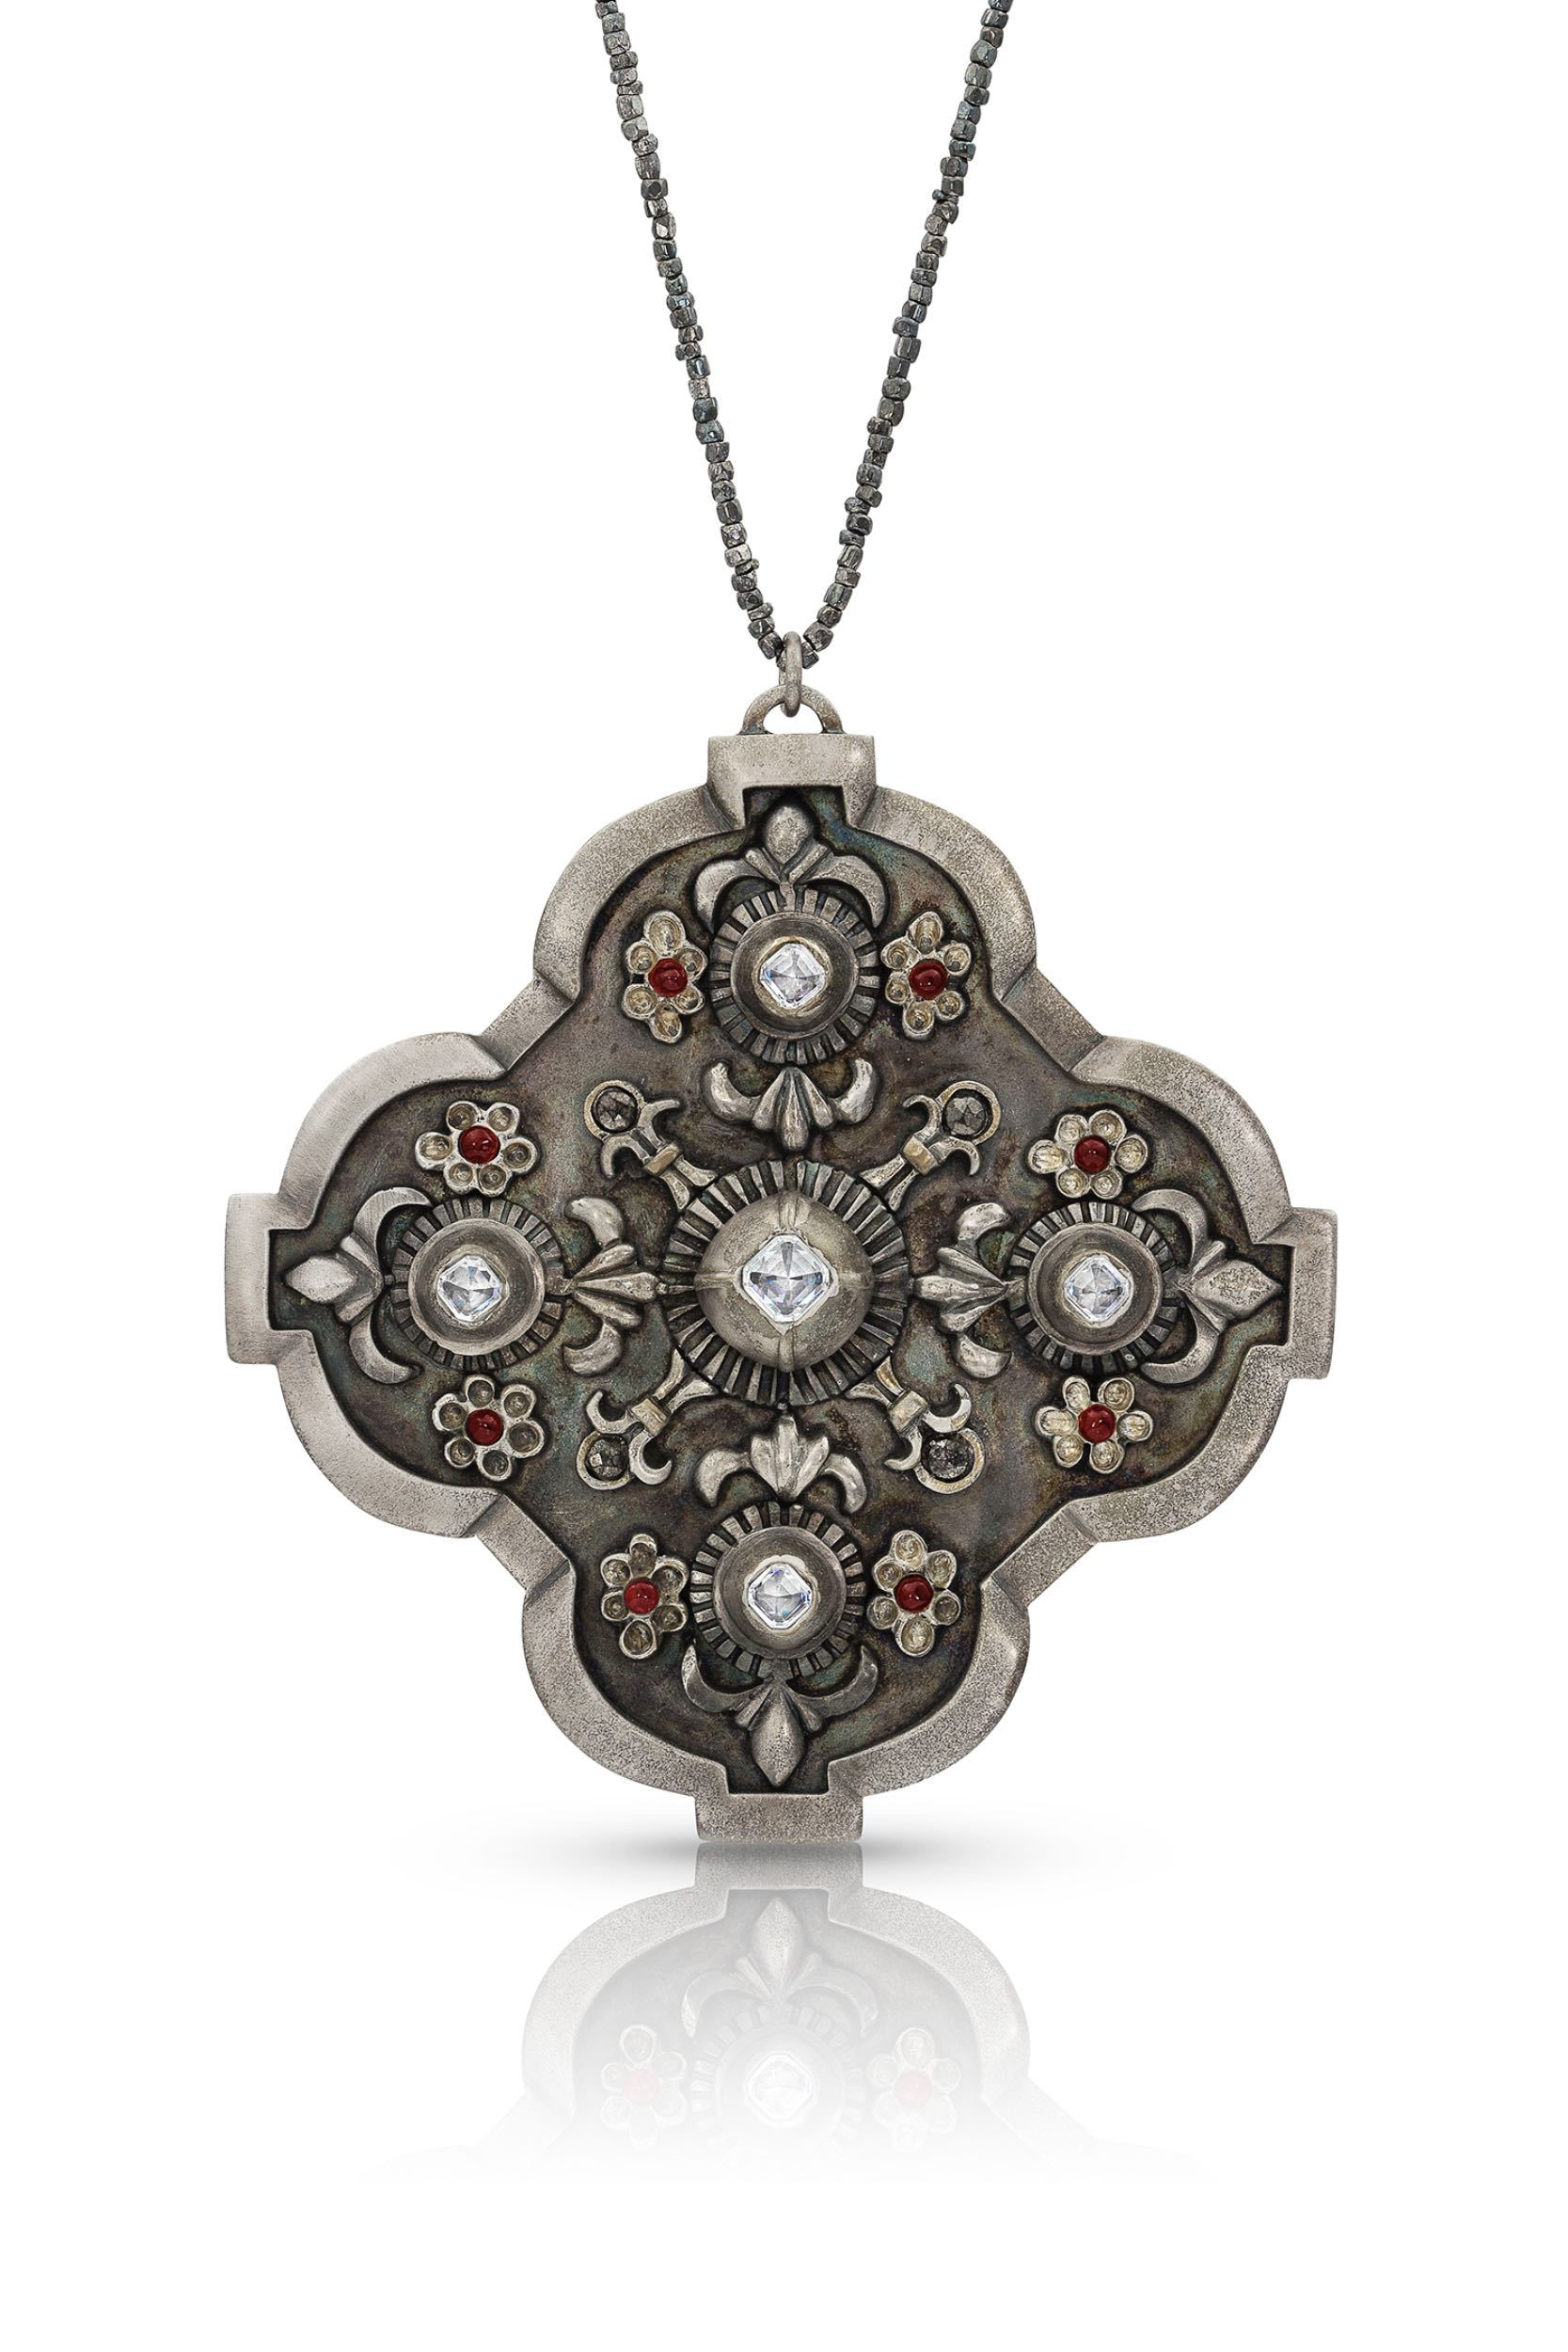 Fabricated and cast pendant - made of bronze with rhodium plating, garnets and Swarovski crystals - strung on cable with hematite beads.